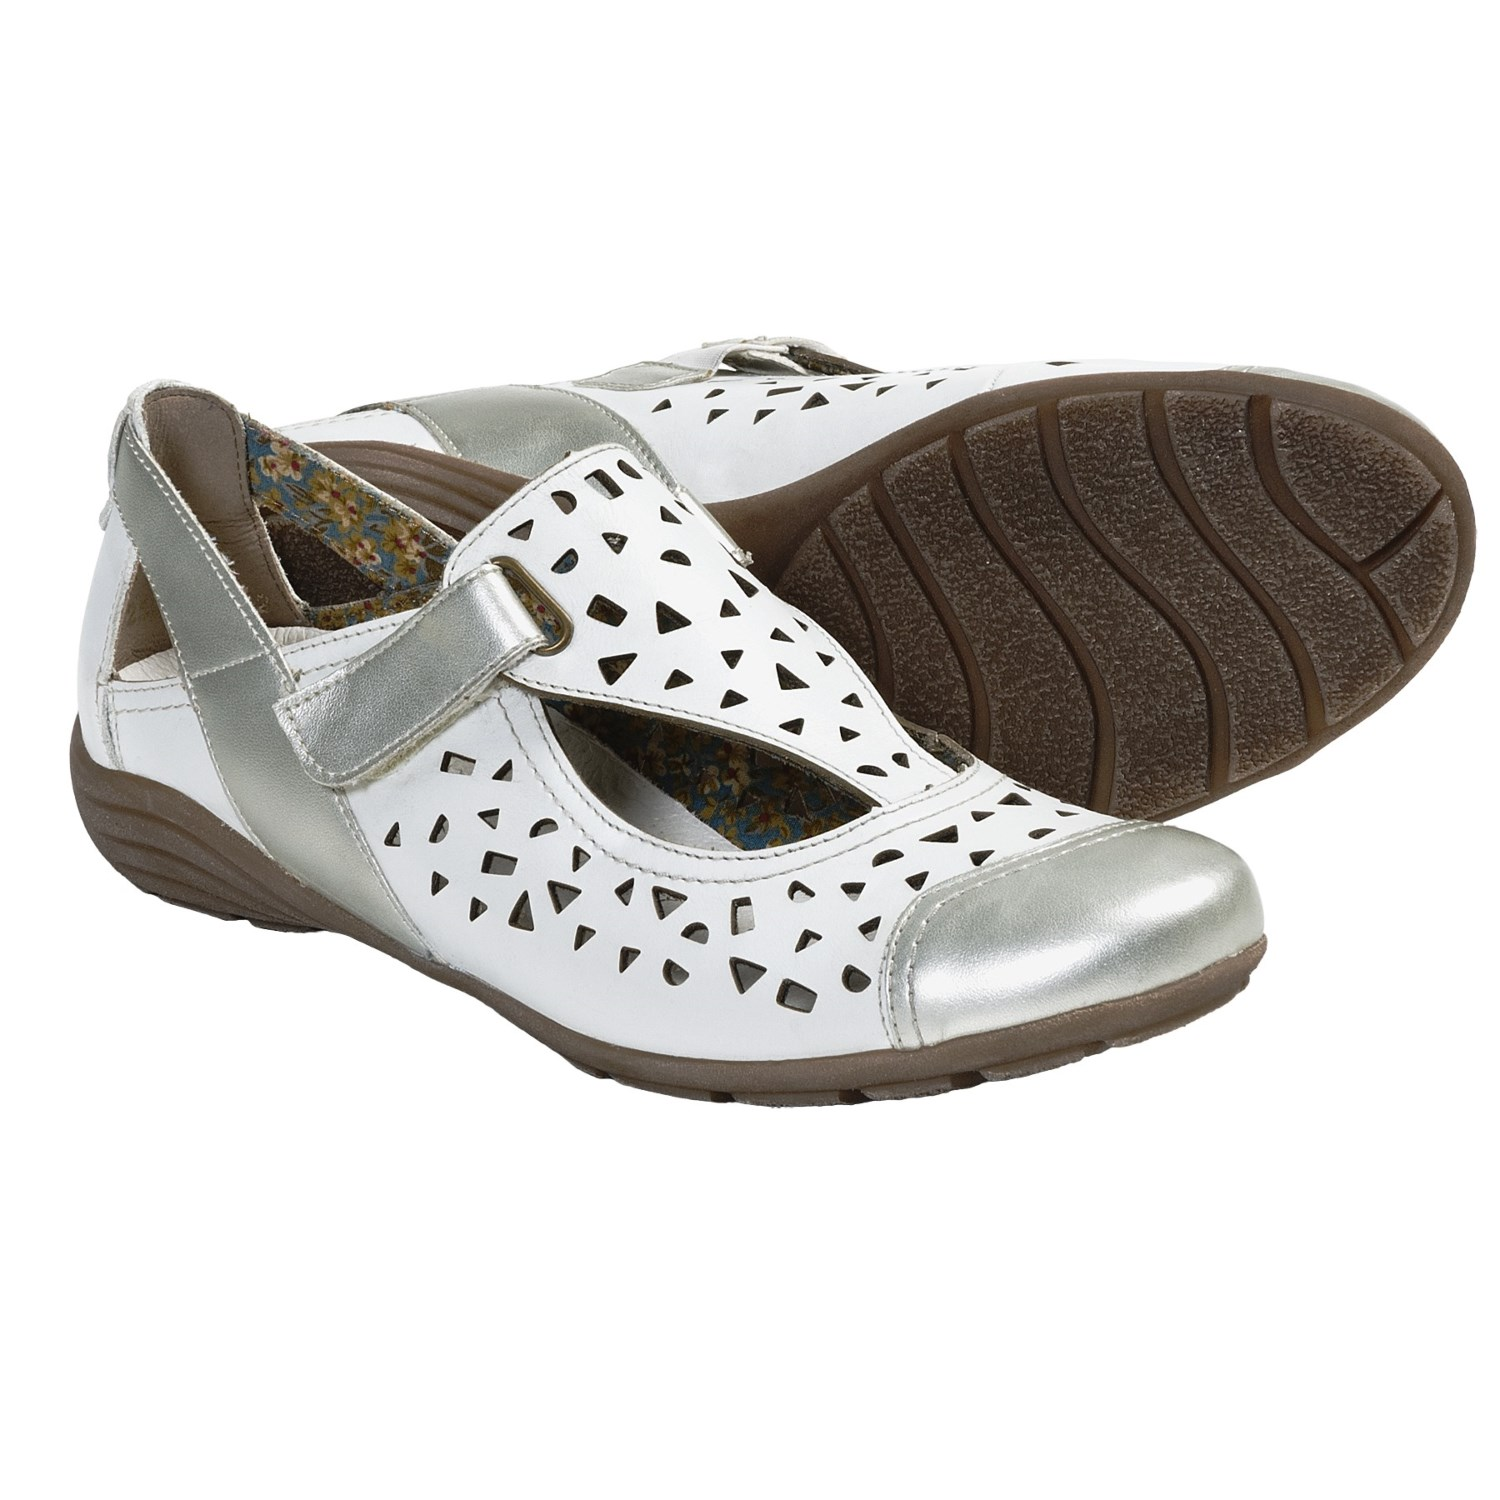 Remonte Dorndorf Dena 01 Shoes (For Women) in Silver/White